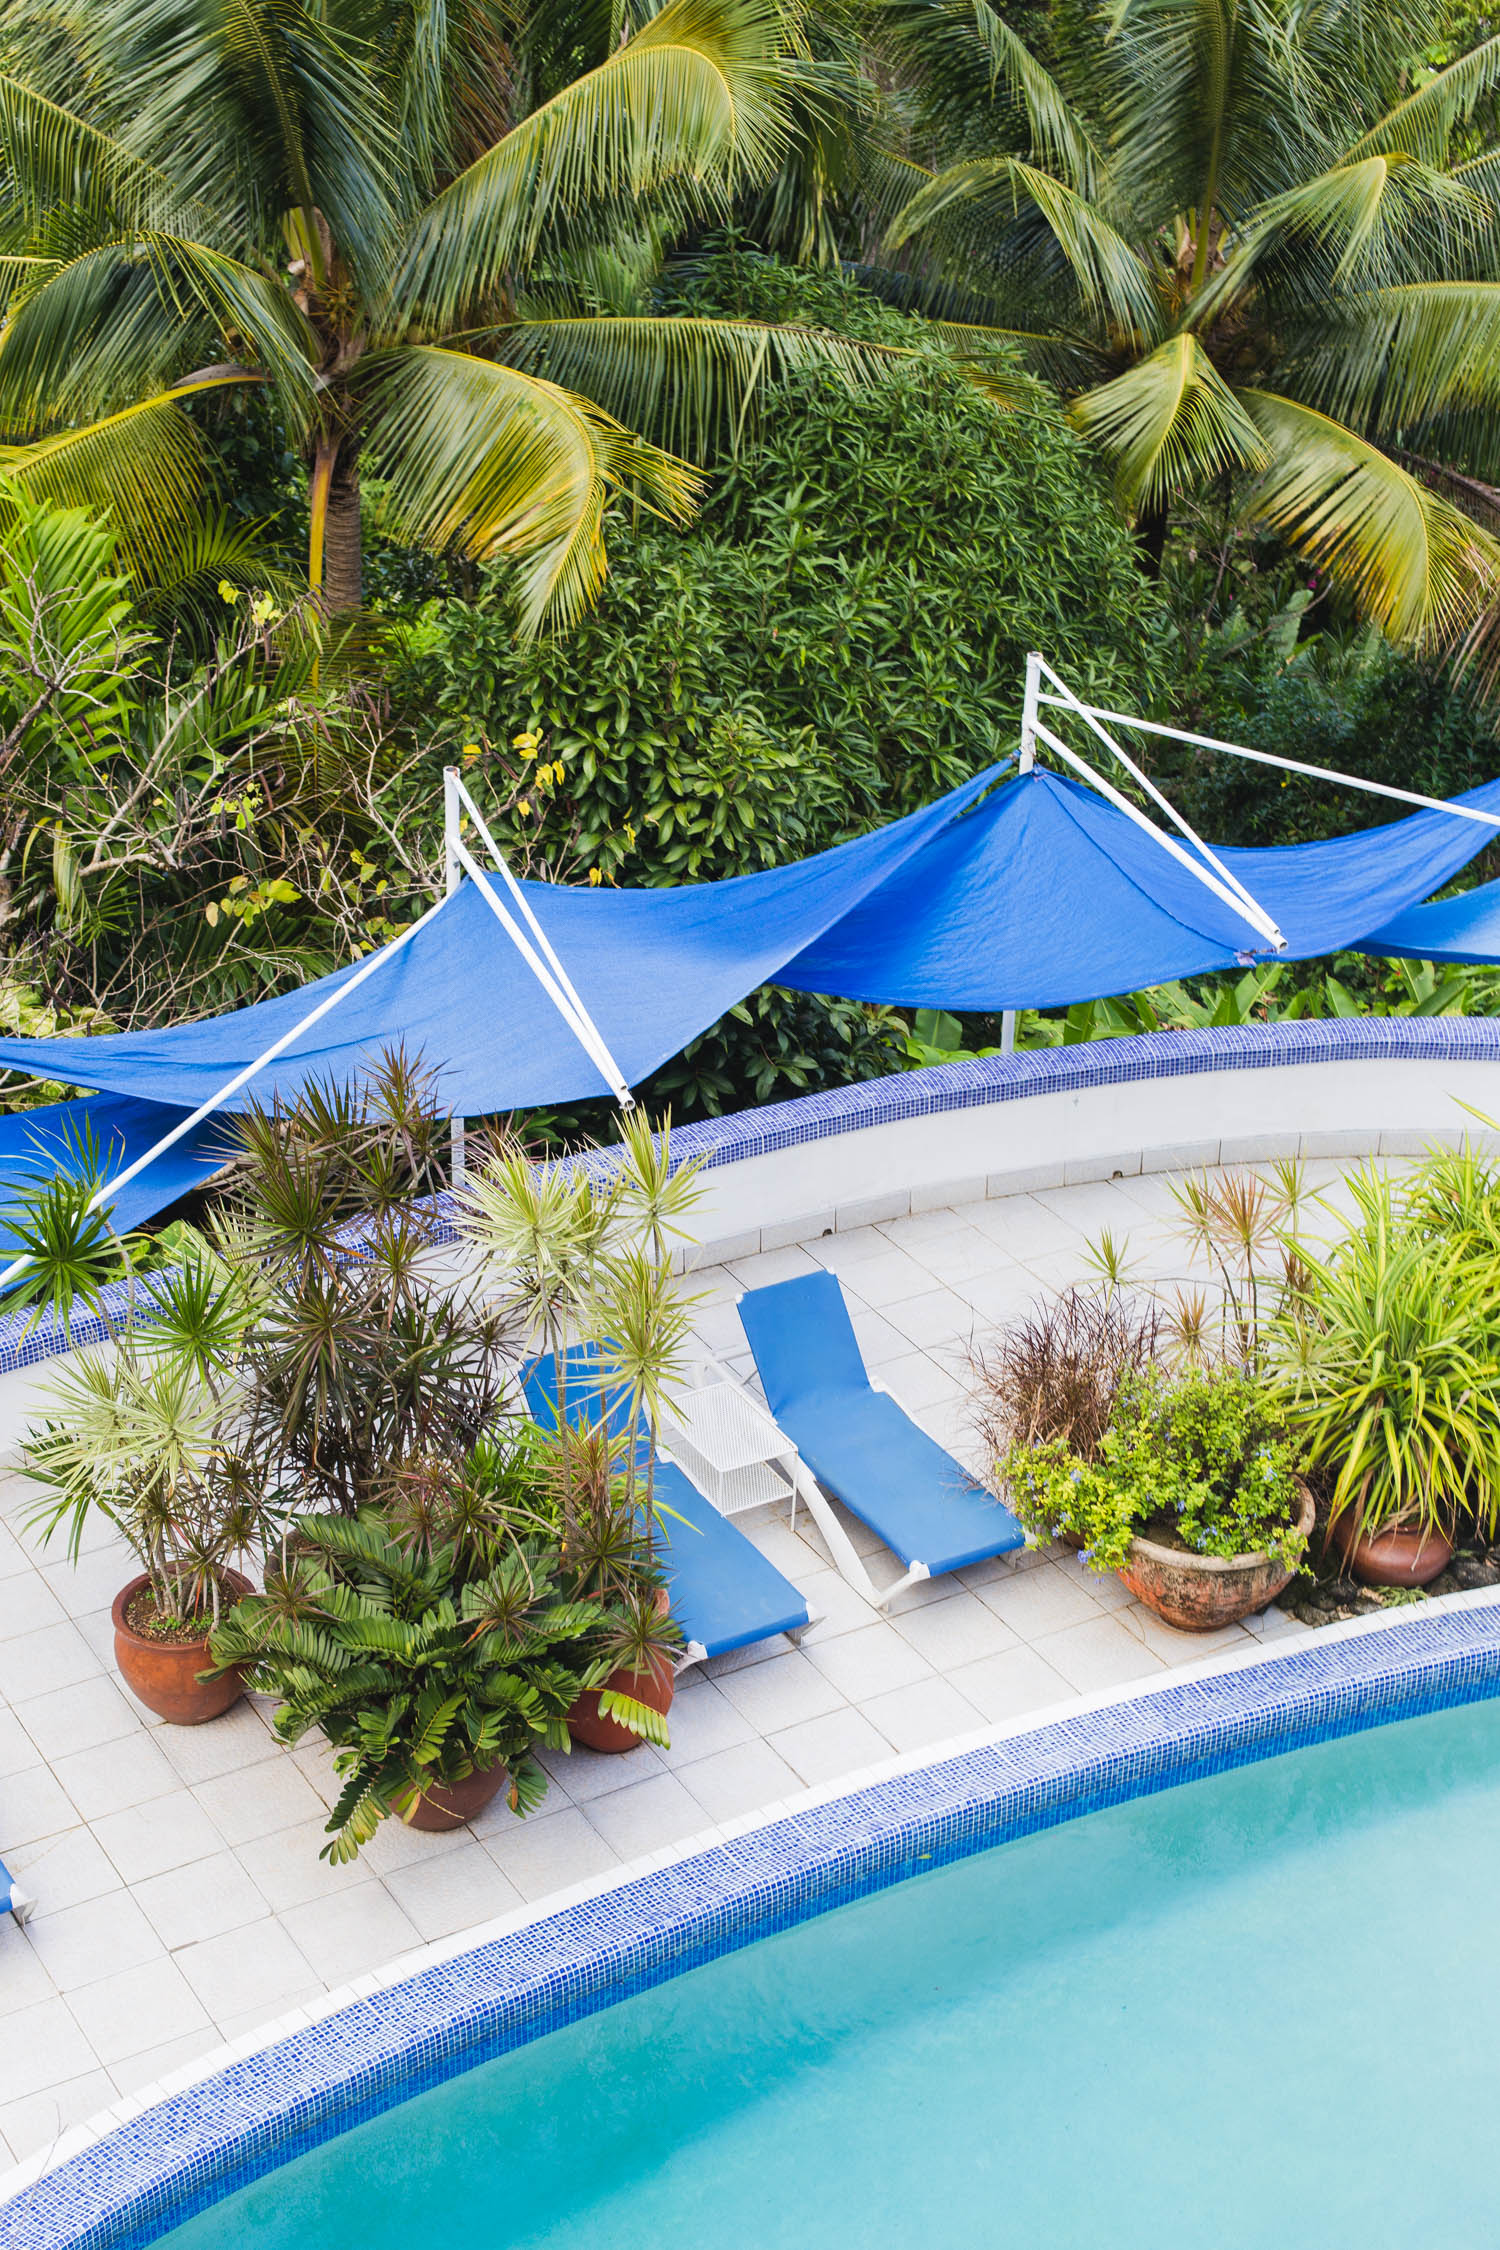 A complete guide to staying at the eco-friendly, boutique Hotel Mockingbird Hill in Port Antonio, Jamaica. It's ideal if you like birdwatching, sustainable tourism and being close to Frenchman's Cove beach.